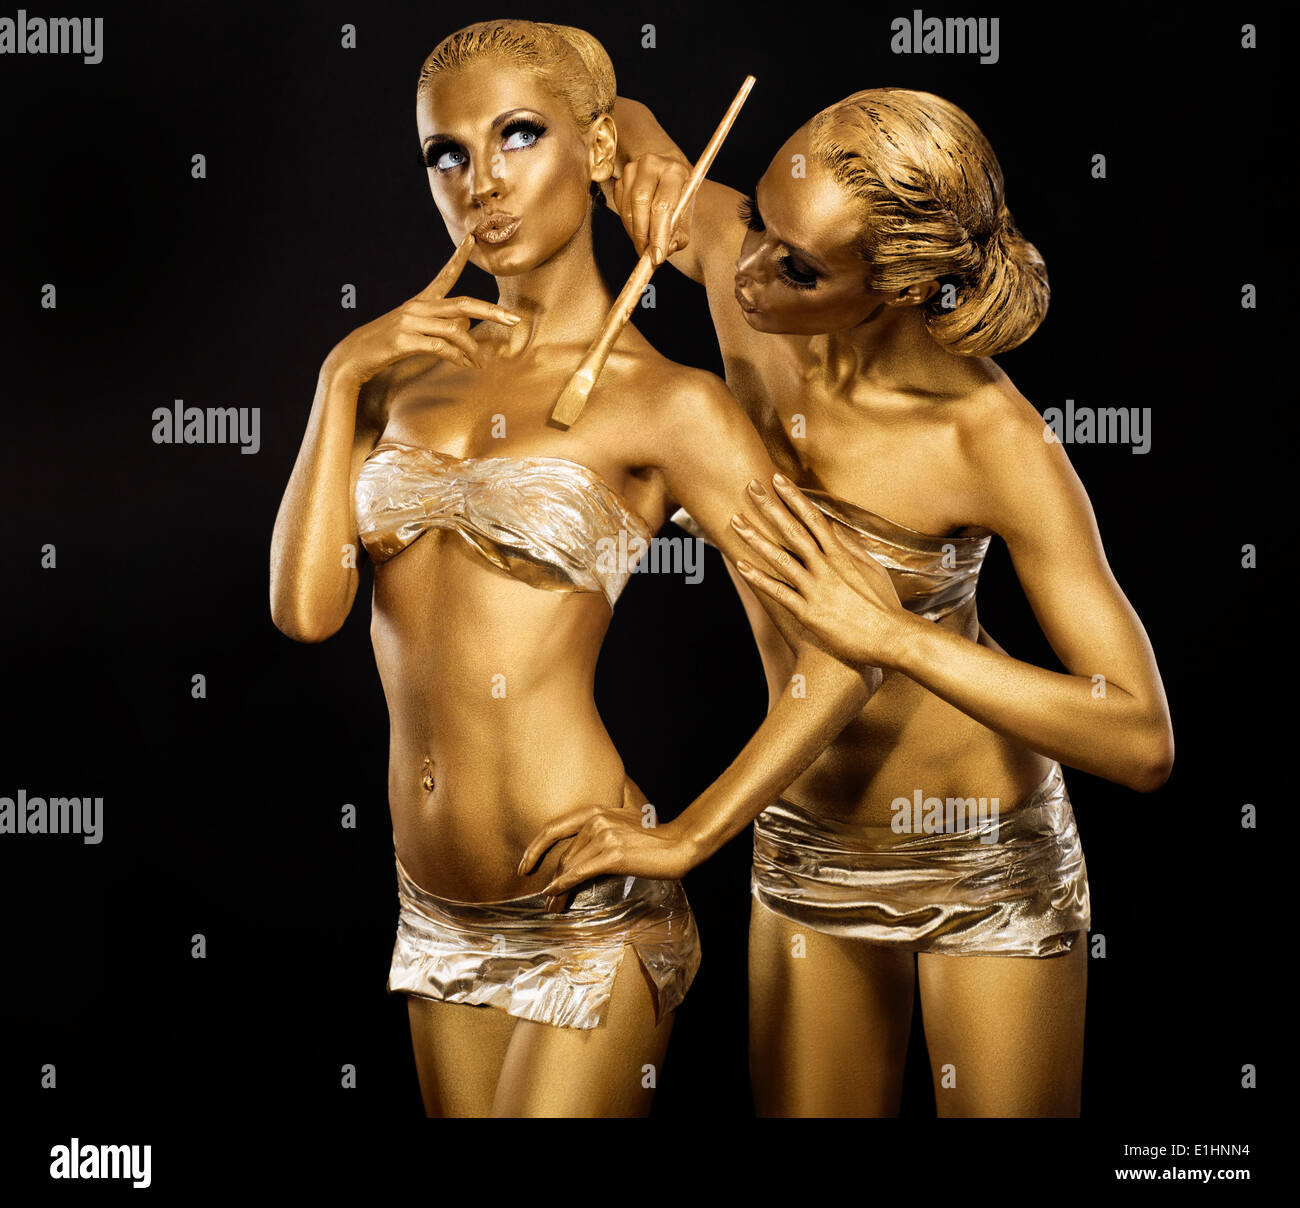 Body Art Woman Painting Body With Paint Brush In Golden Color Gold Stock Photo Alamy